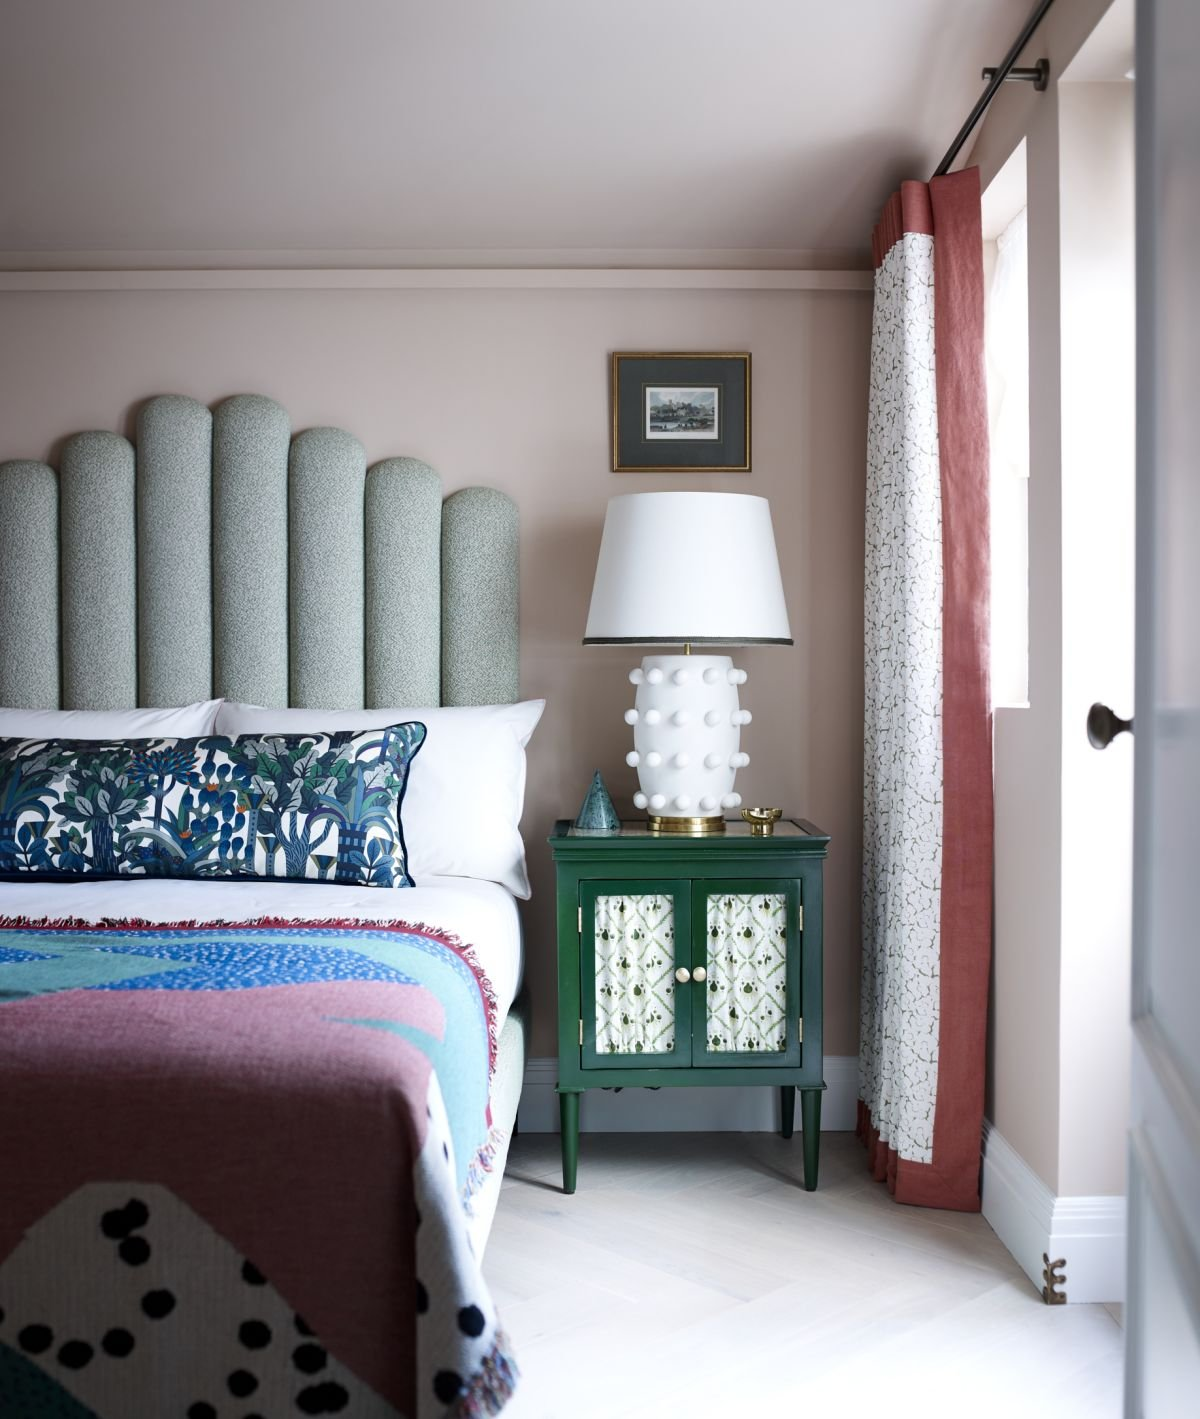 6 color scheming mistakes – and how to avoid them, according to design experts